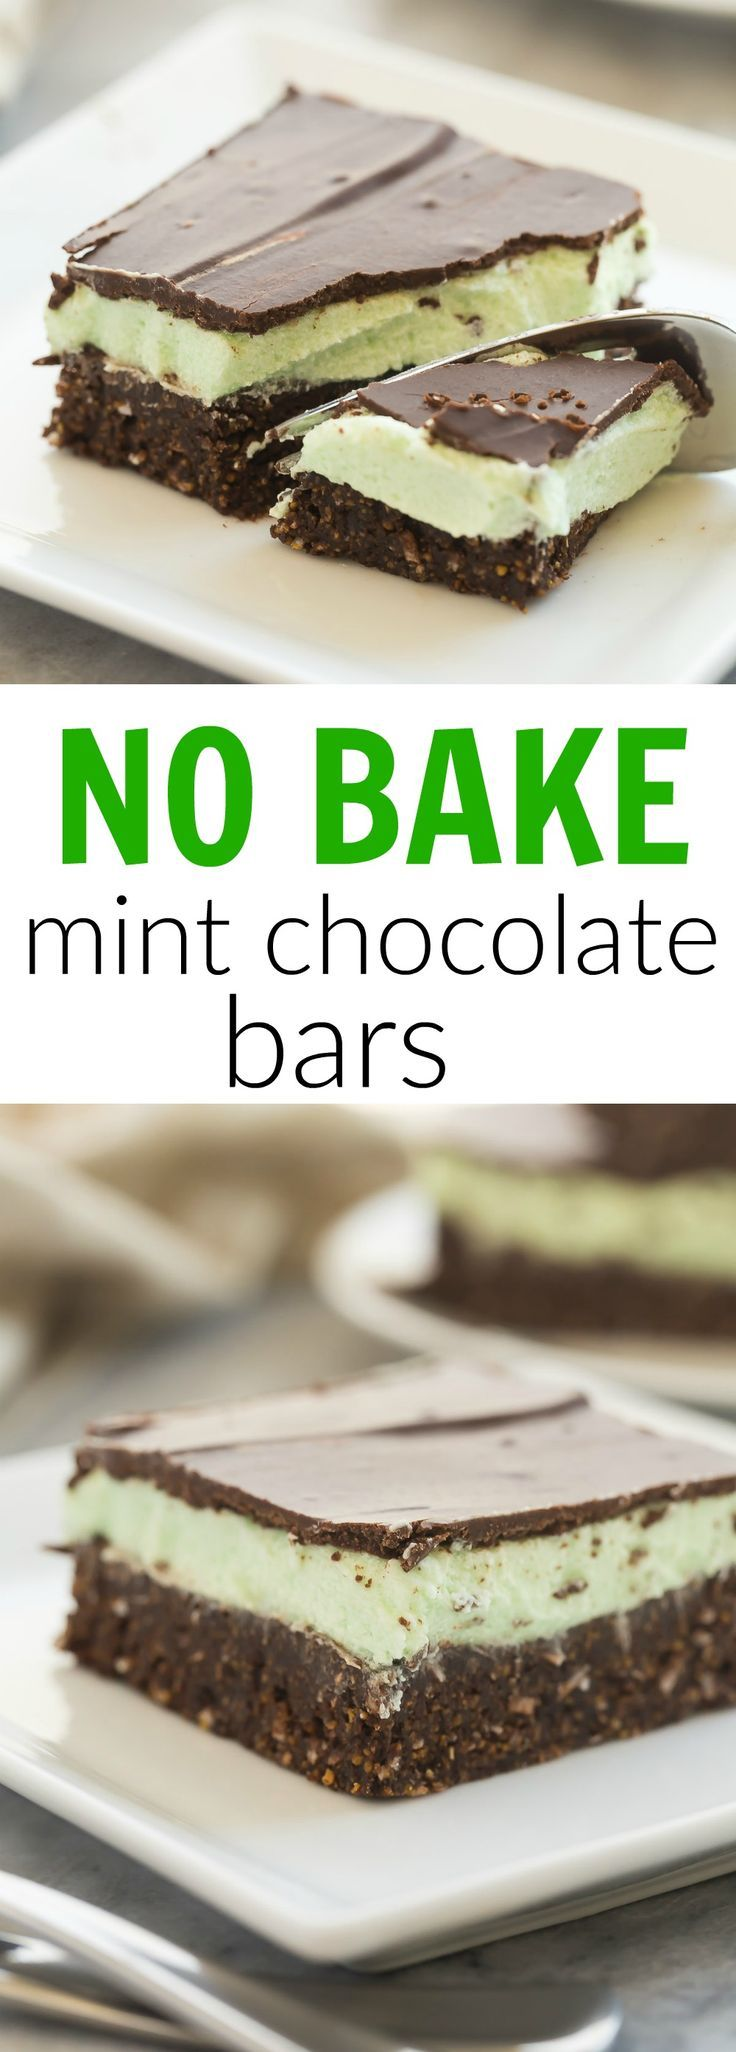 These No Bake Mint Chocolate Bars are one of my ALL-TIME favorites! Made up of a no bake graham cracker crust and topped with a creamy mint frosting and chocolate ganache!